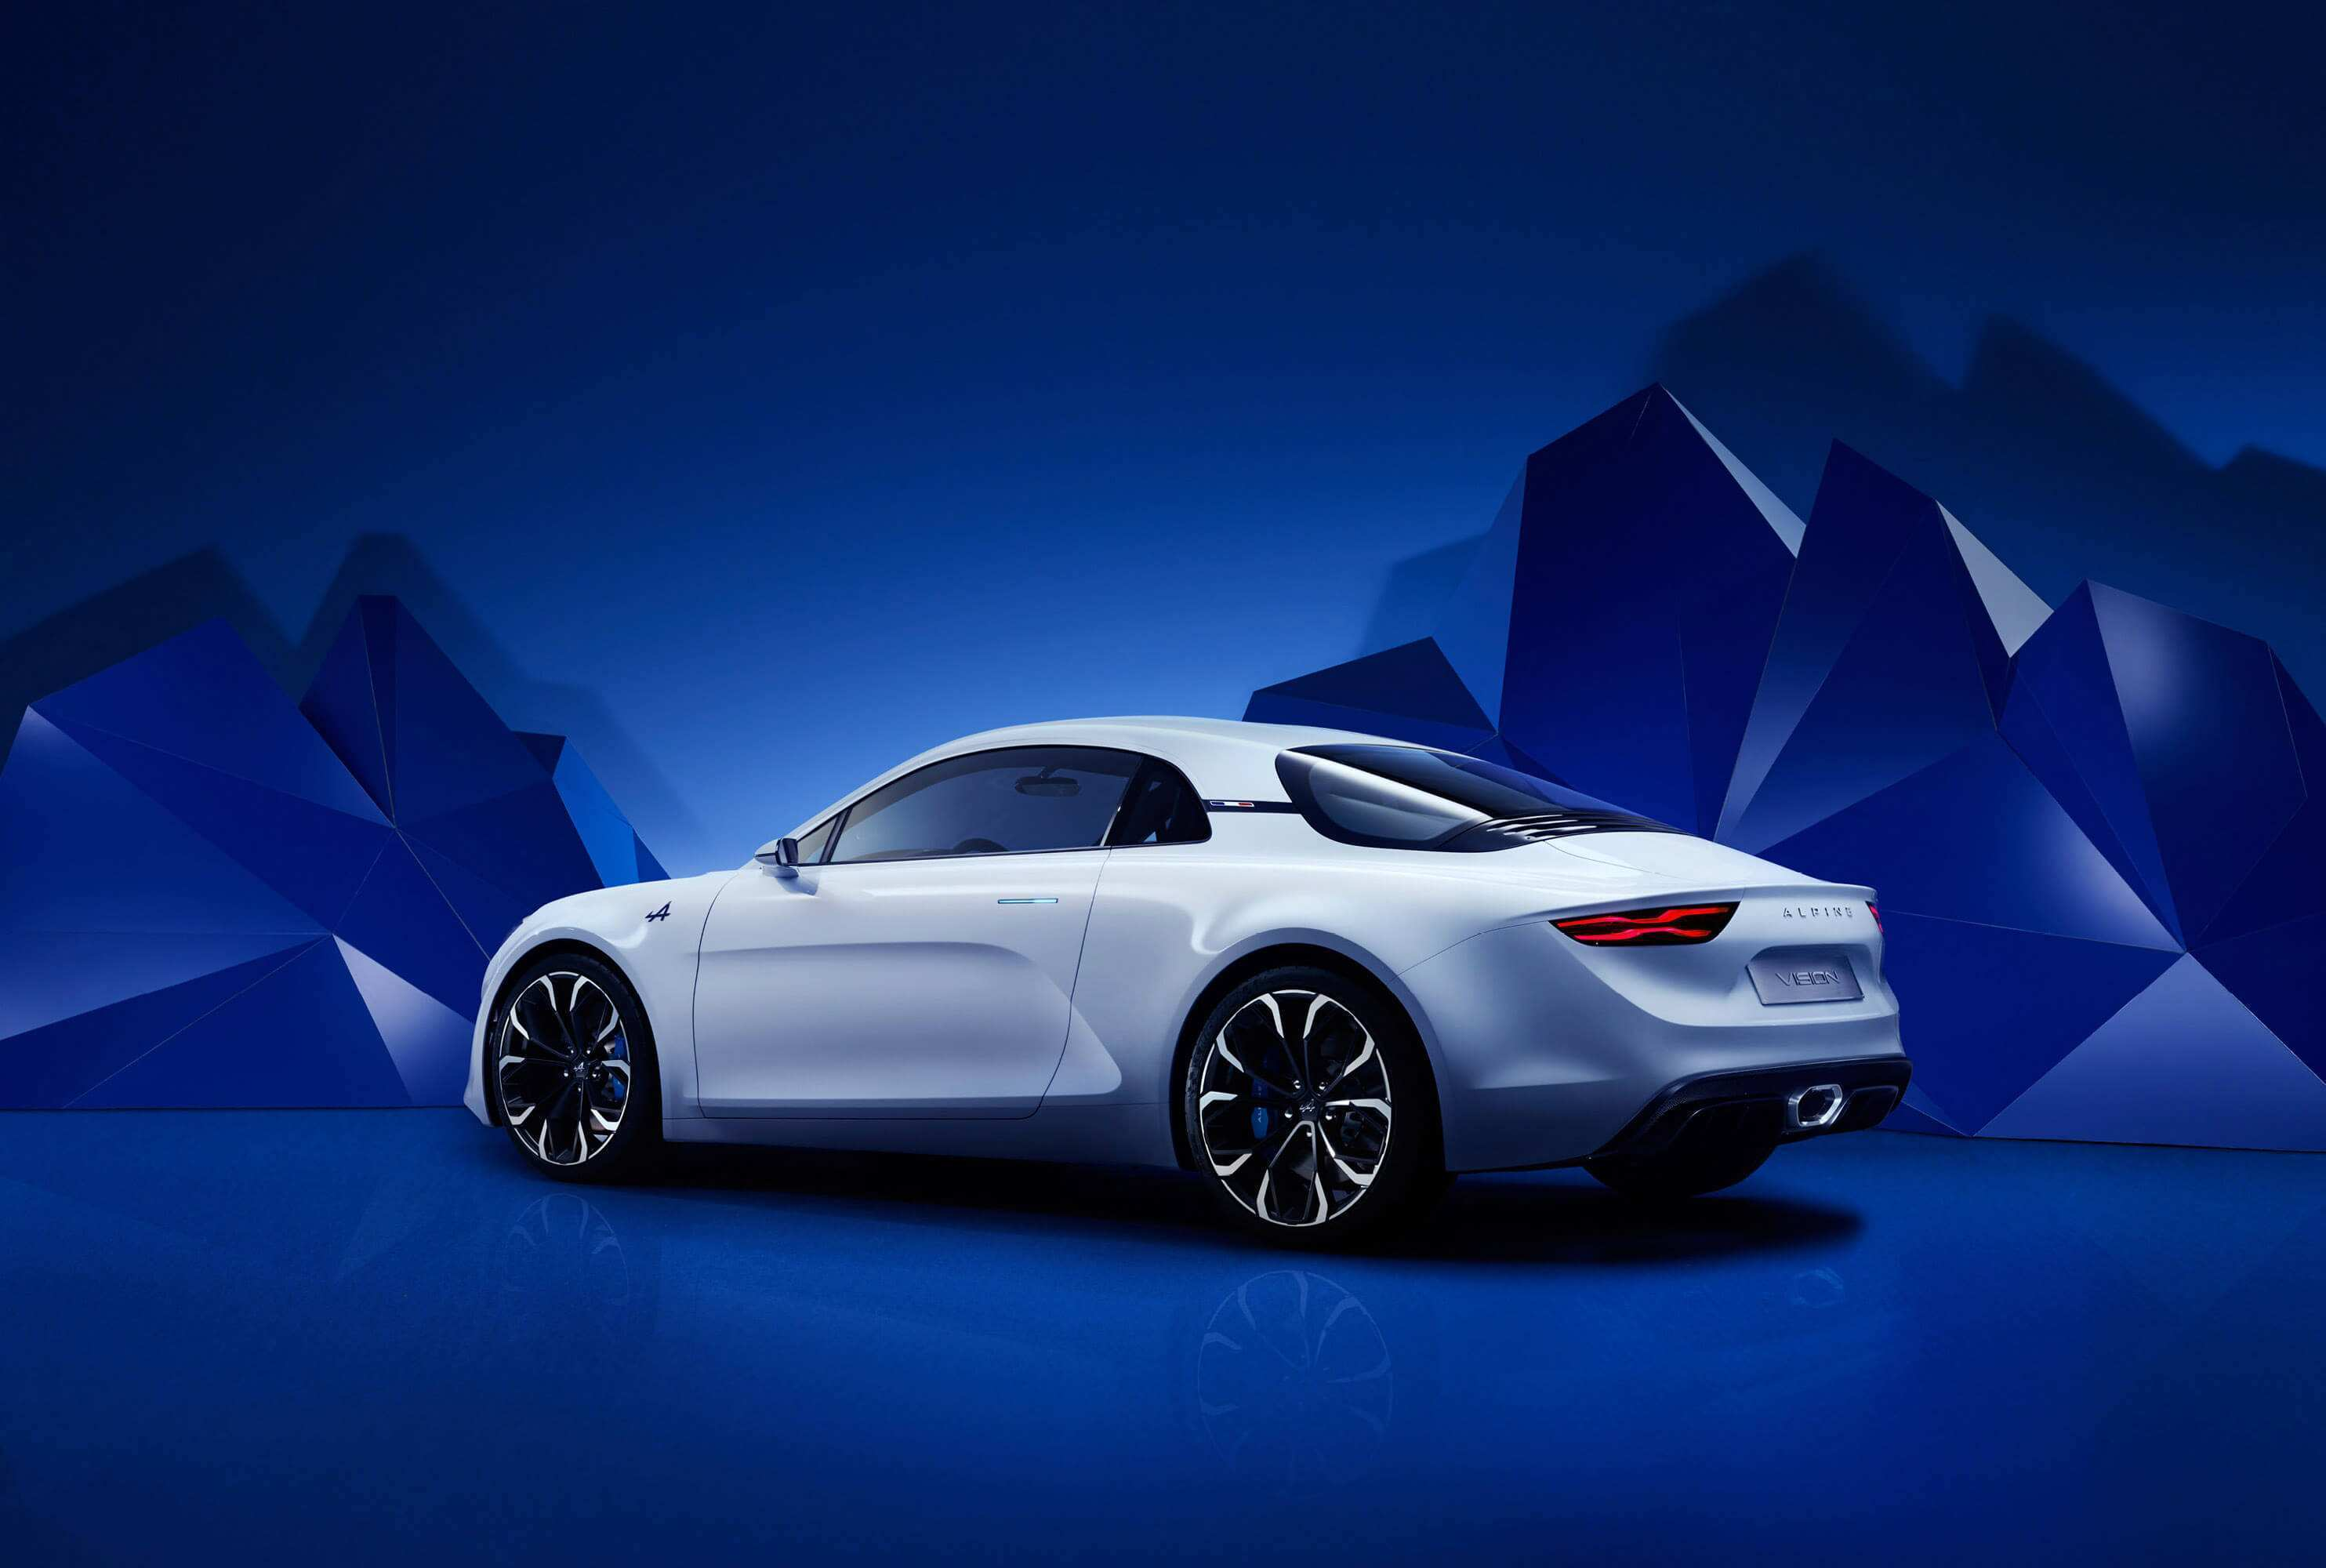 61 Great Renault Alpine 2020 Style for Renault Alpine 2020